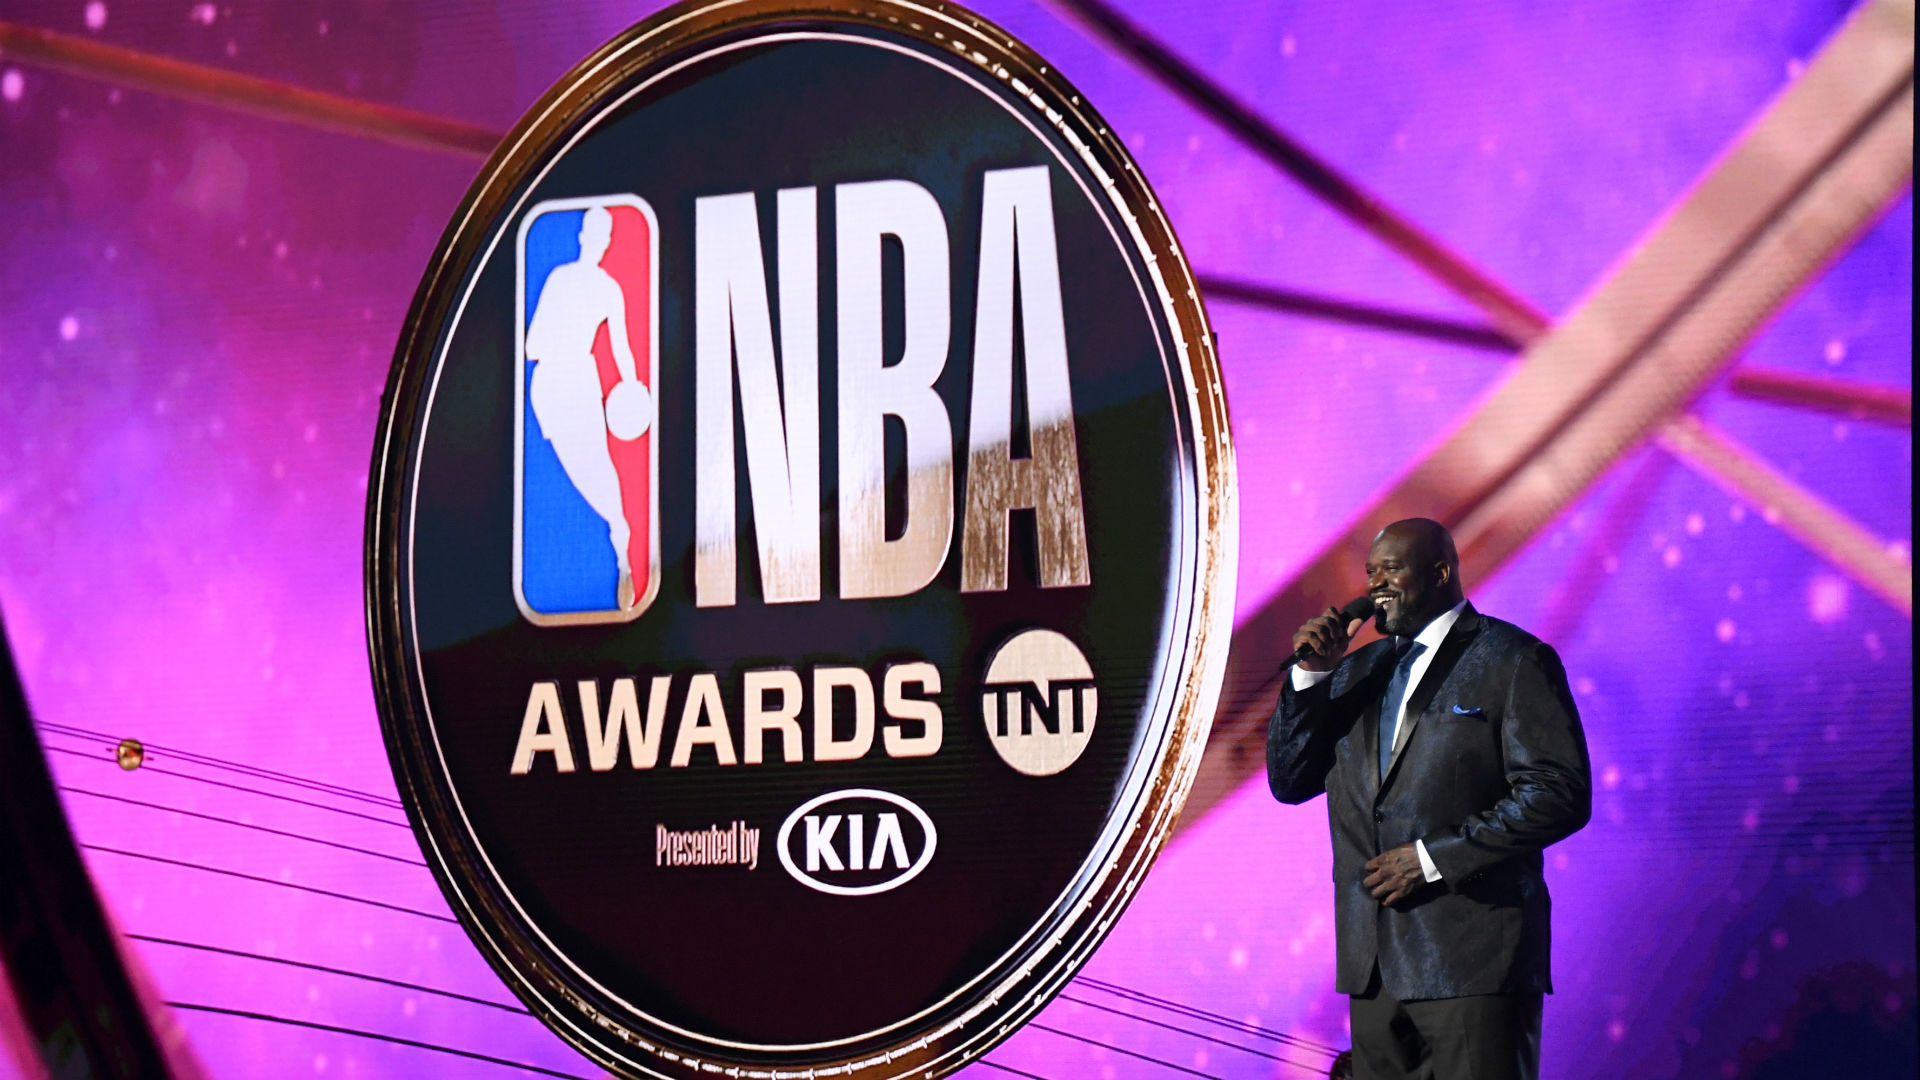 NBA Awards 2019: Live updates, highlights, video and more from the 2019 NBA Awards